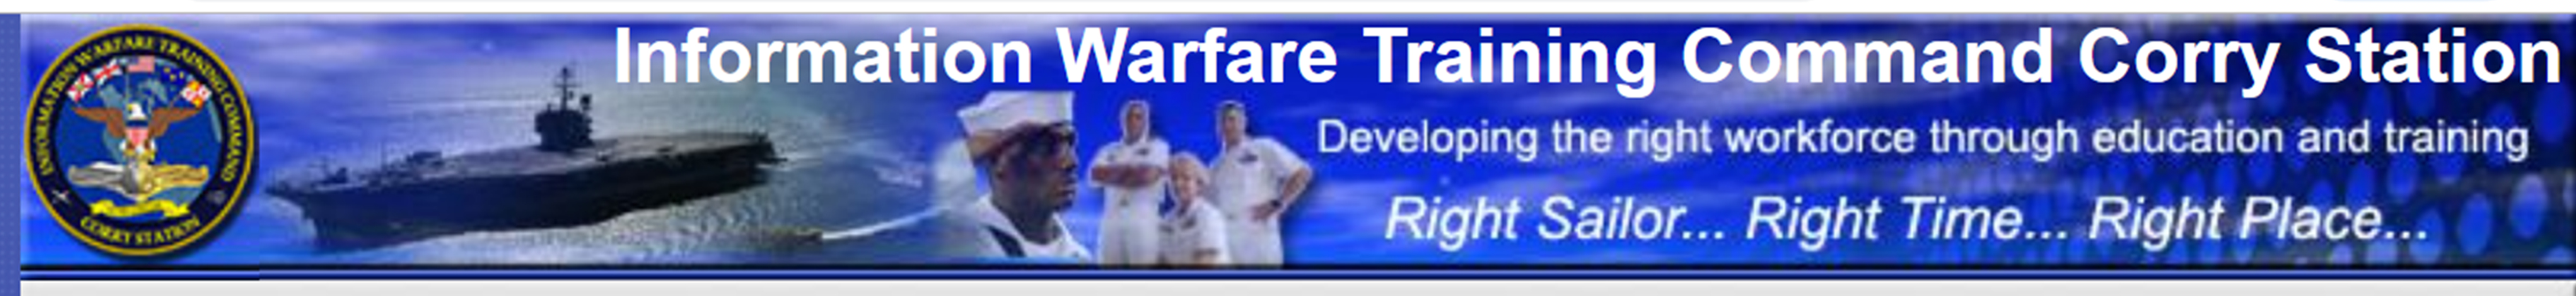 IWTC Corry Station web banner.